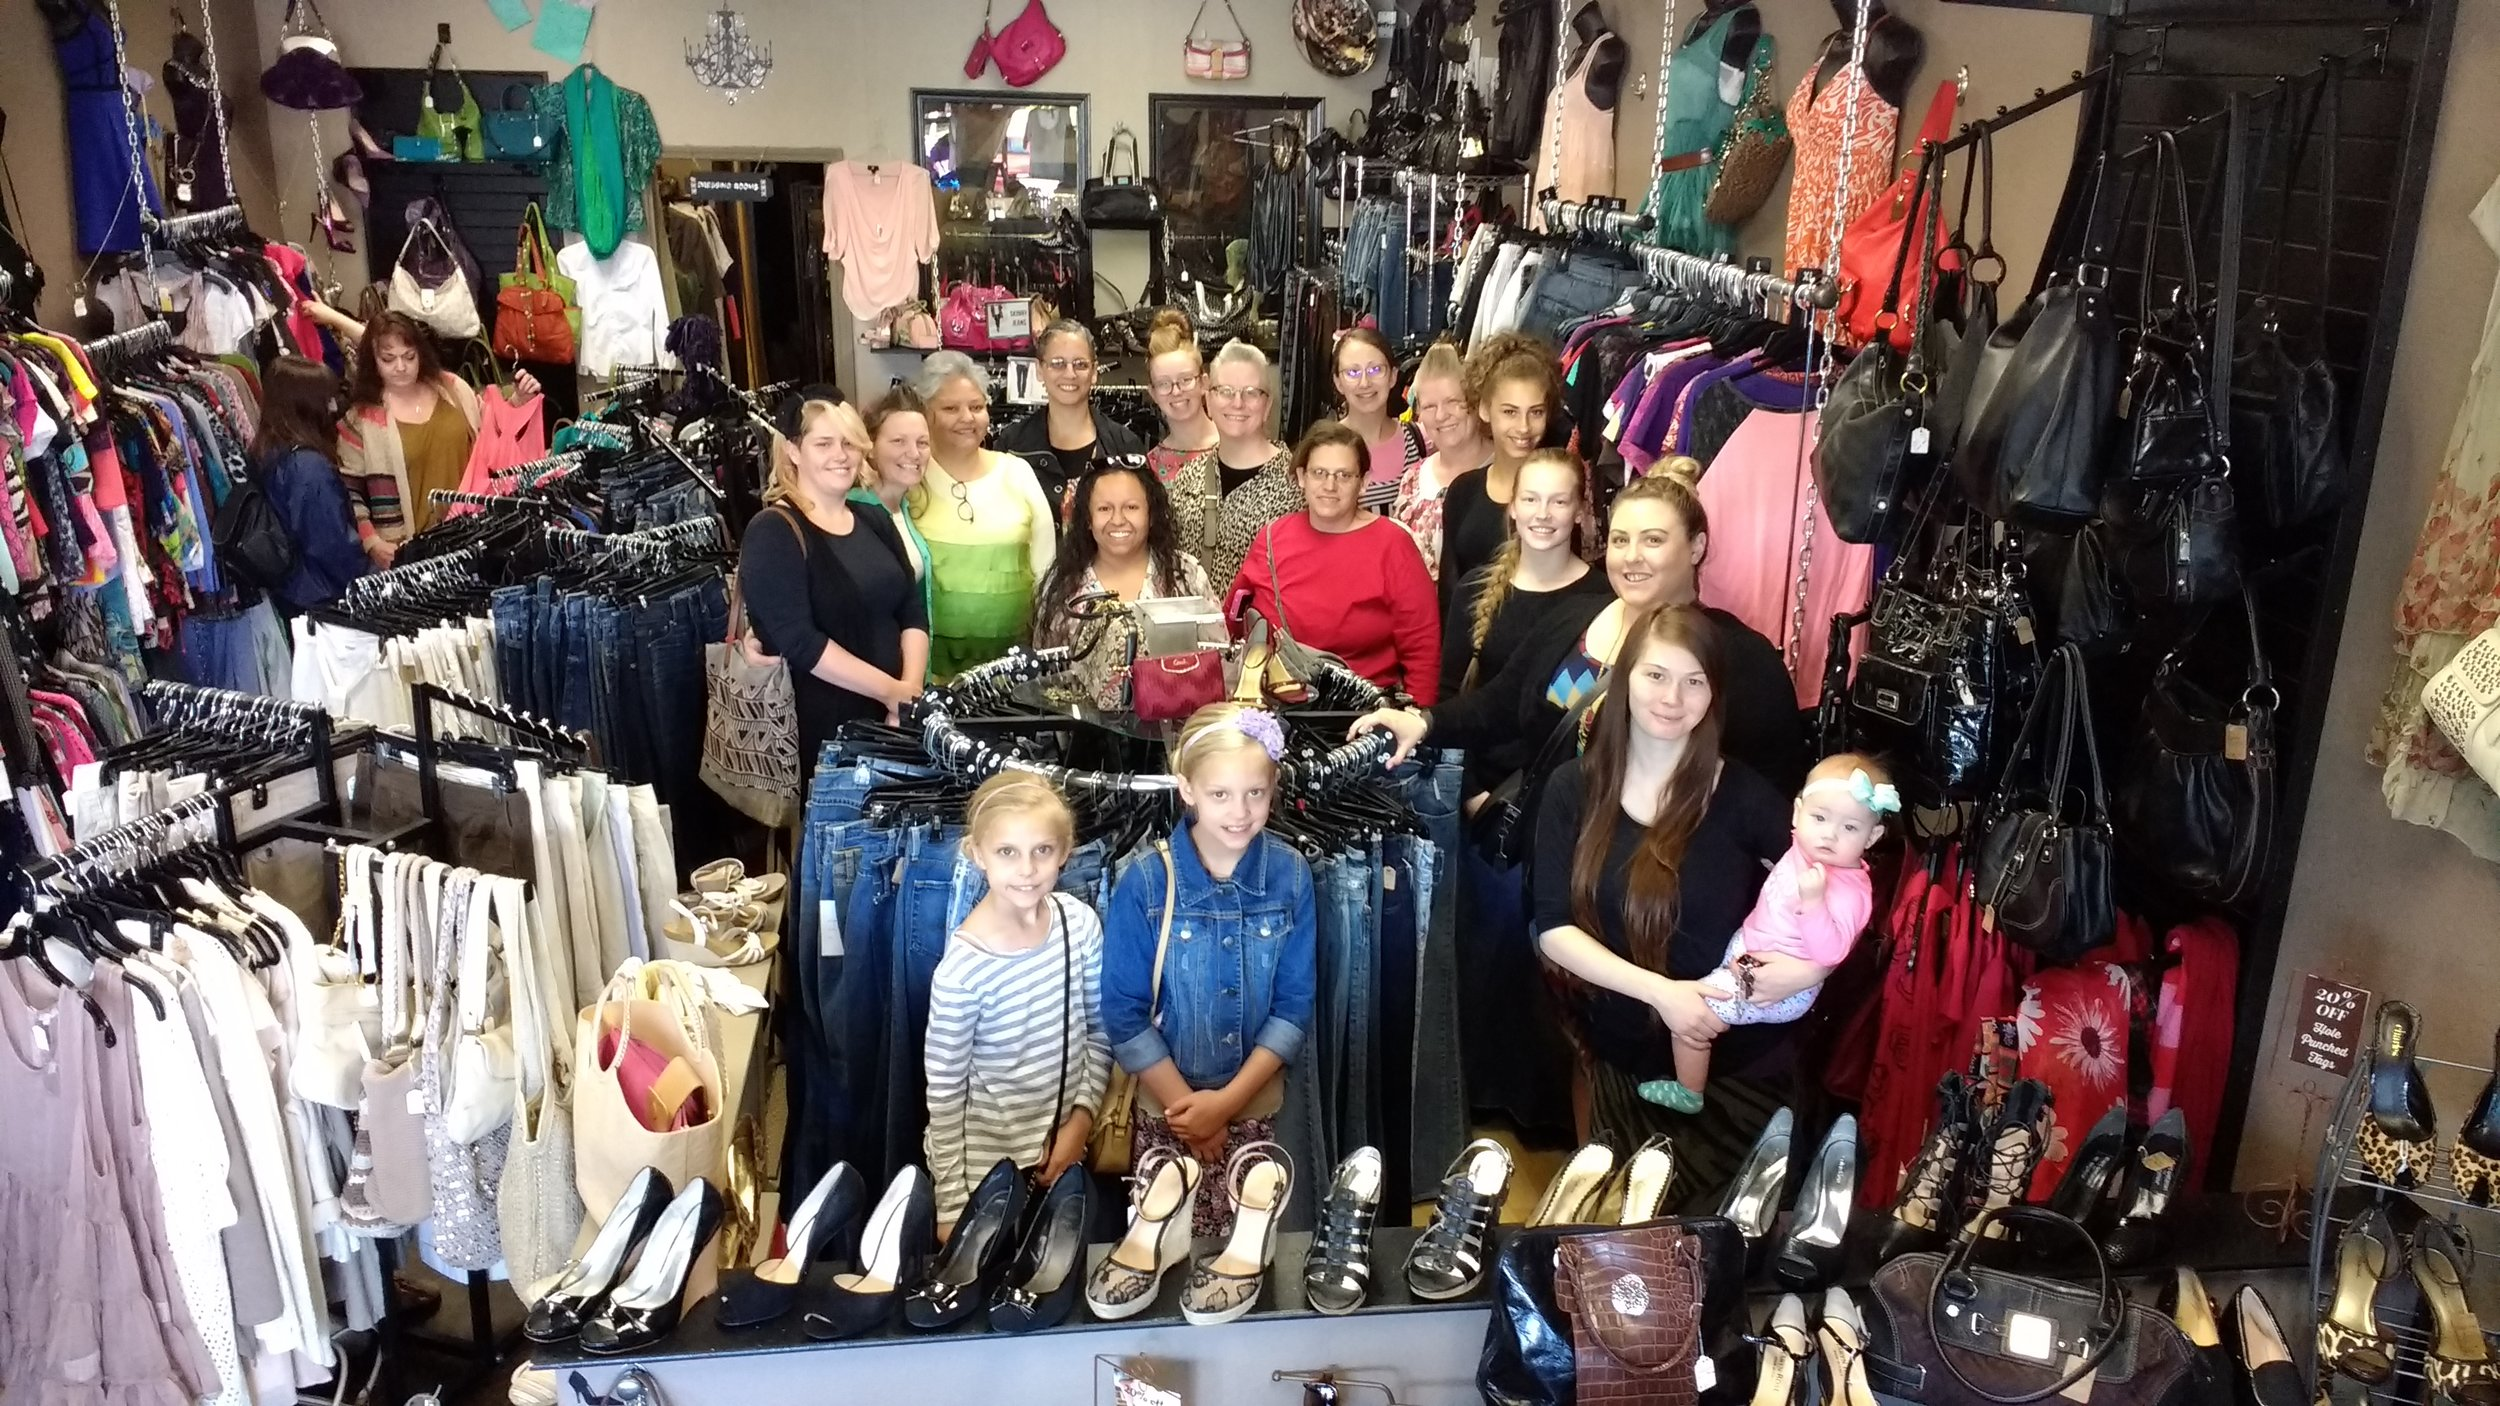 The owner of The Kat Walk, was so kind as to take a group picture of all the ladies who went shopping that day. Thank you.